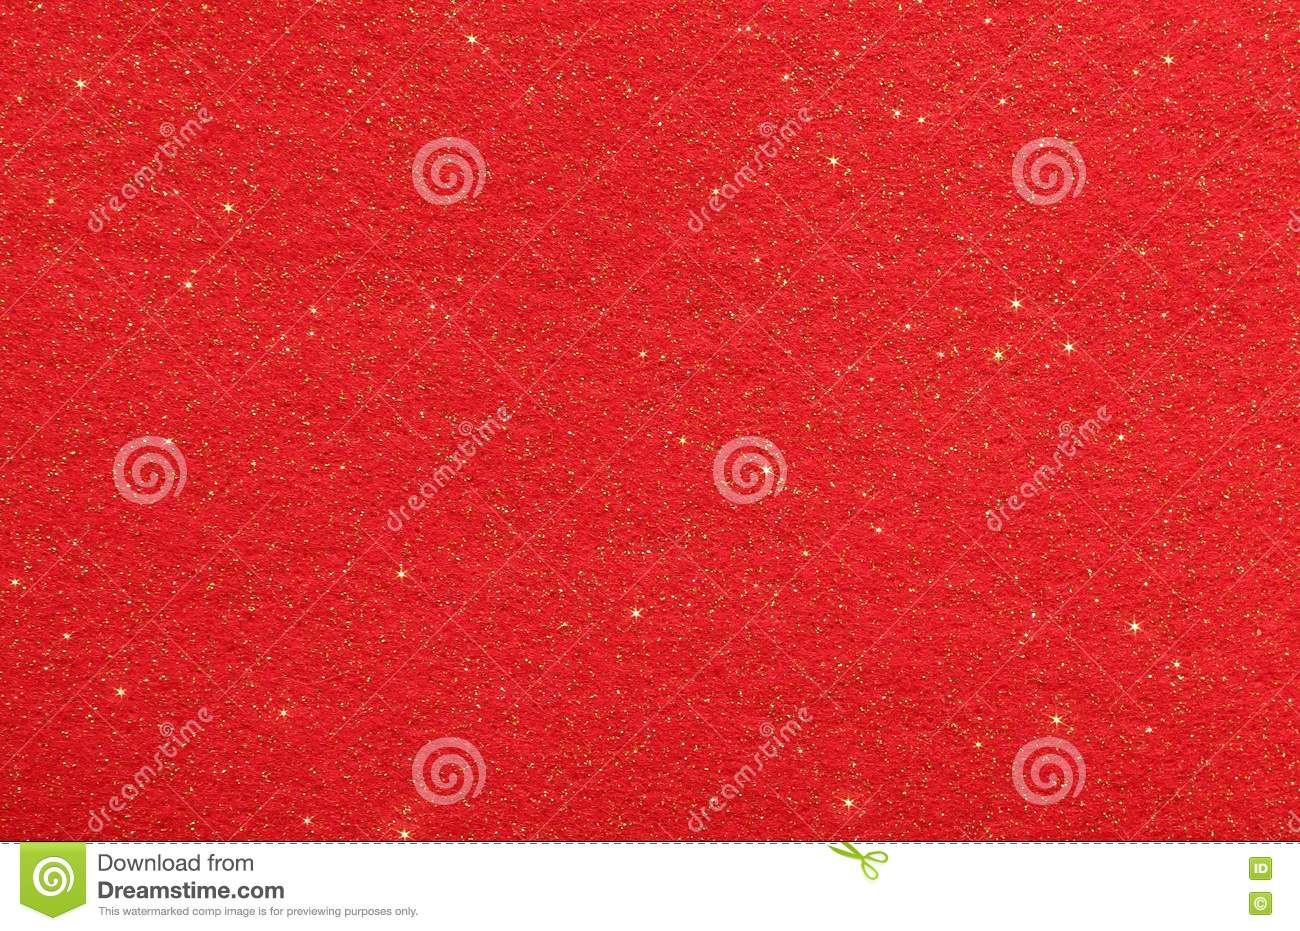 Red abstract background with glittering stars